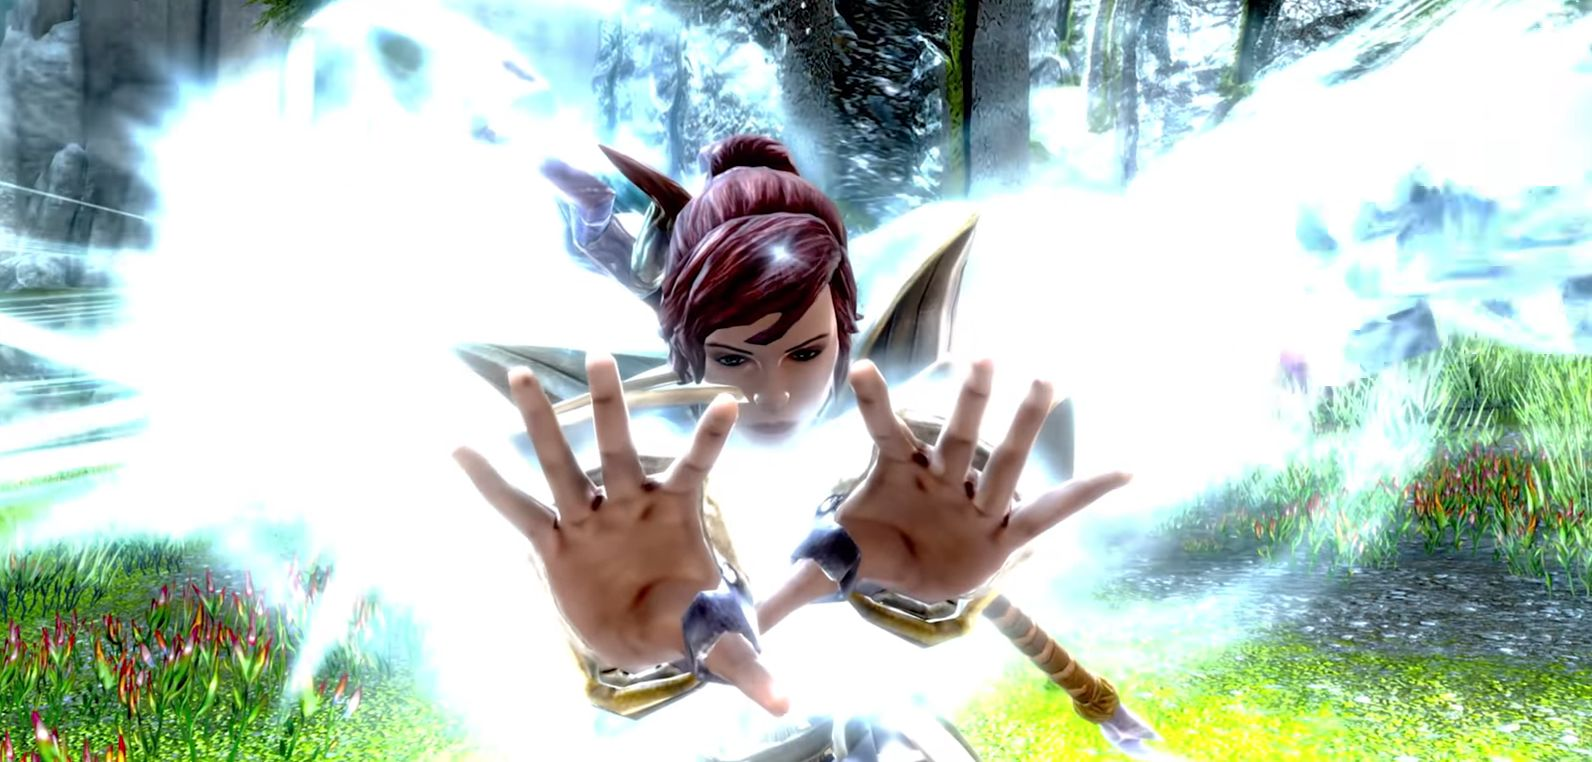 The path of Sorcery detailed in Kingdoms of Amalur: Re-Reckoning gameplay trailer thumbnail